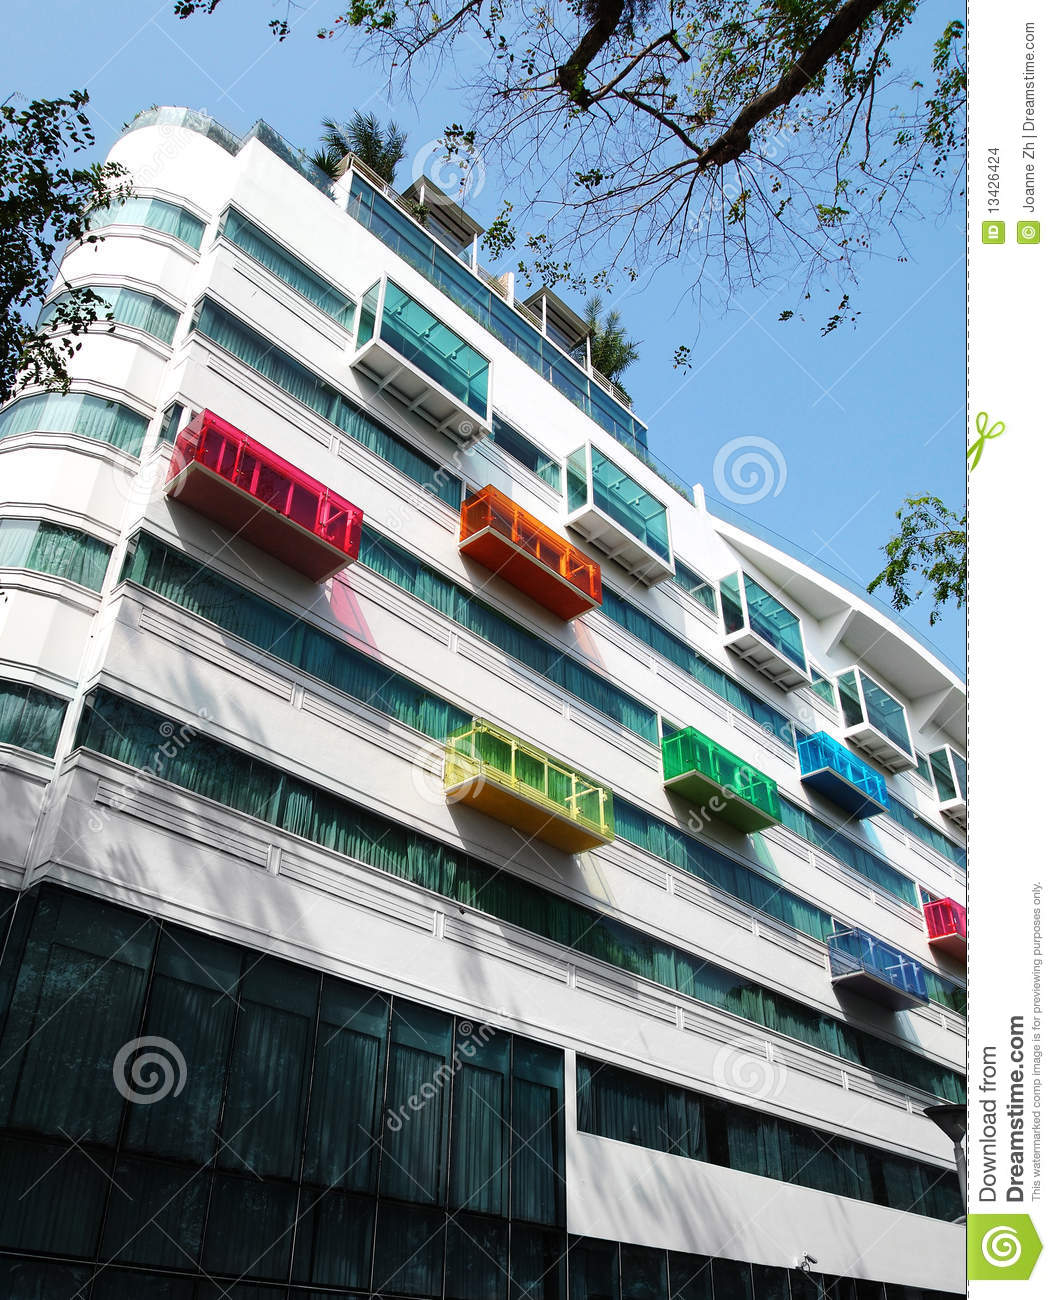 rchitectural Details, Modern Hotel Stock Images - Image: 13426424 - ^